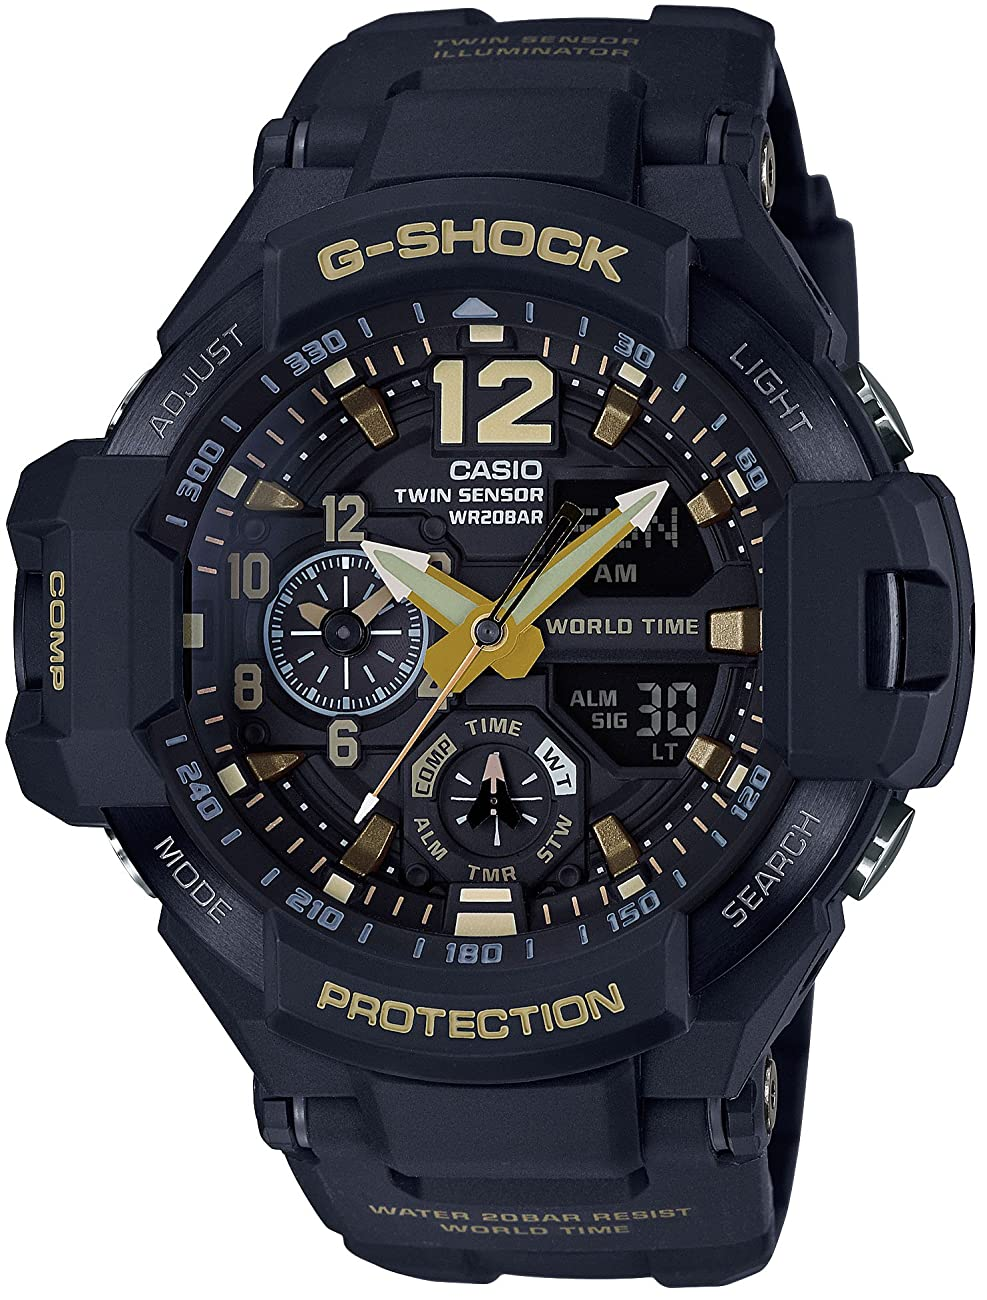 CASIO G-SHOCK MASTER OF G Vintage Black & Gold GRAVITYMASTER GA-1100GB-1AJF MENS JAPAN IMPORT 0